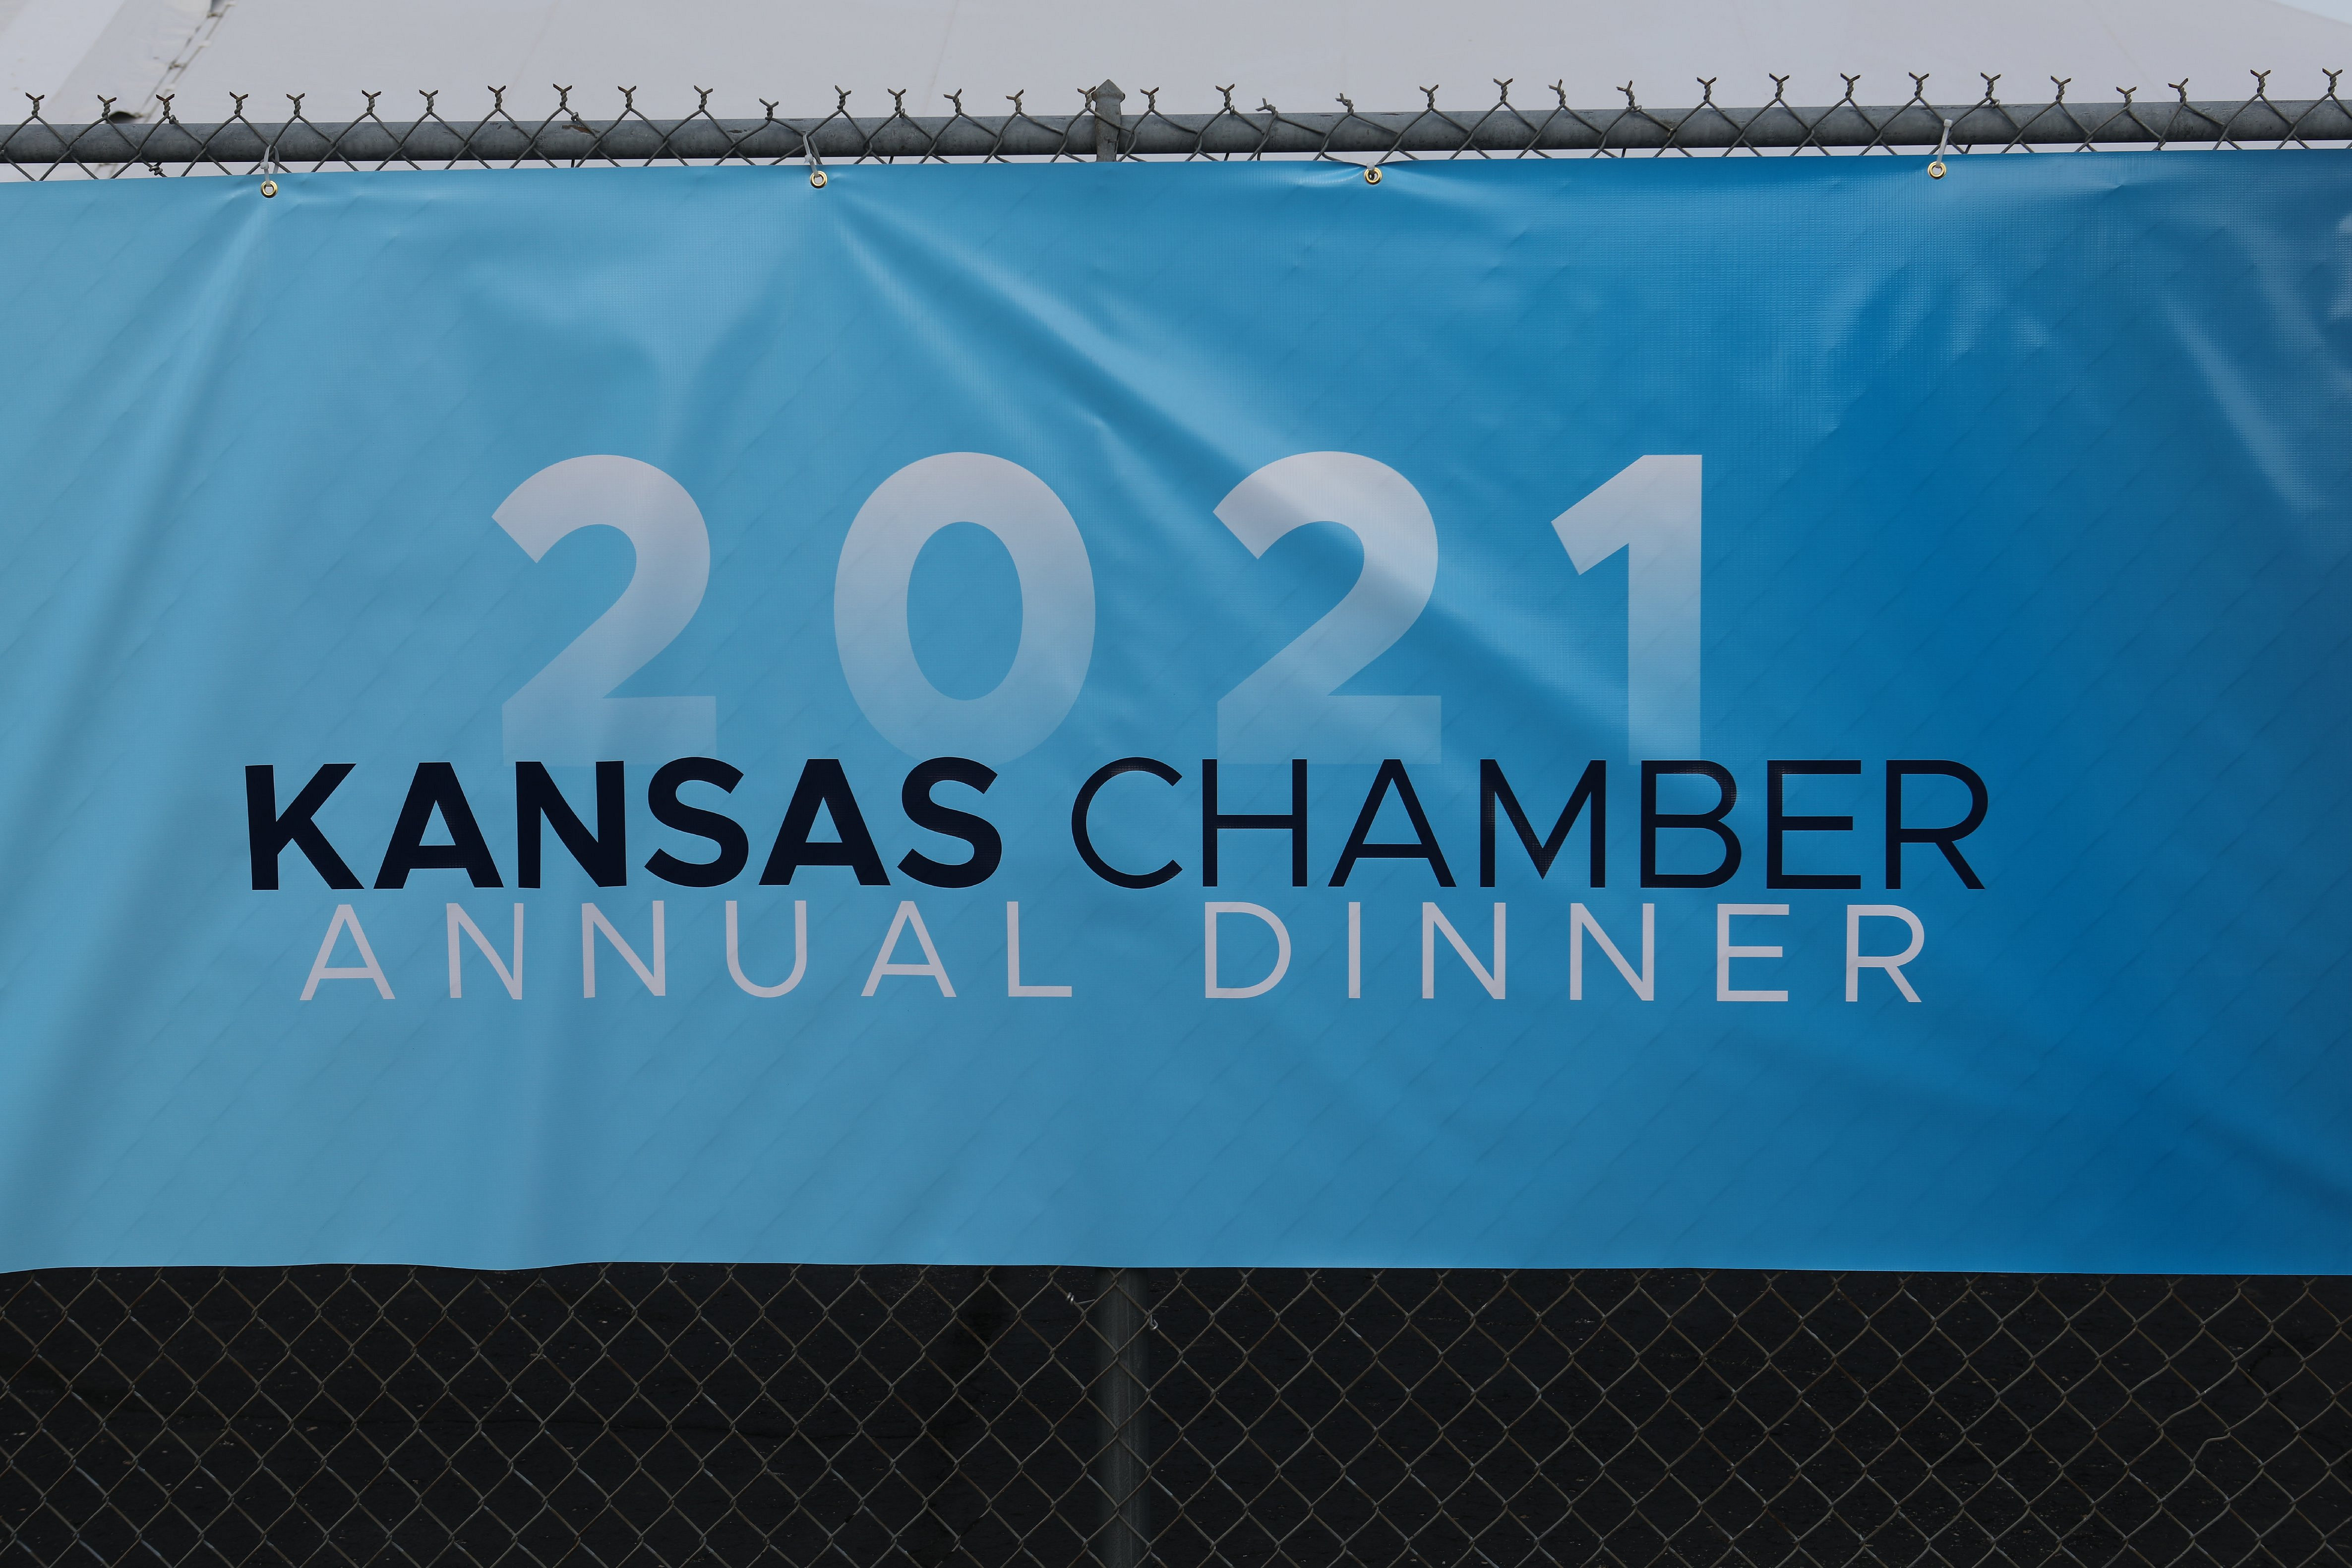 Kansas Chamber of Commerce holds annual dinner at Vaerus Aviation